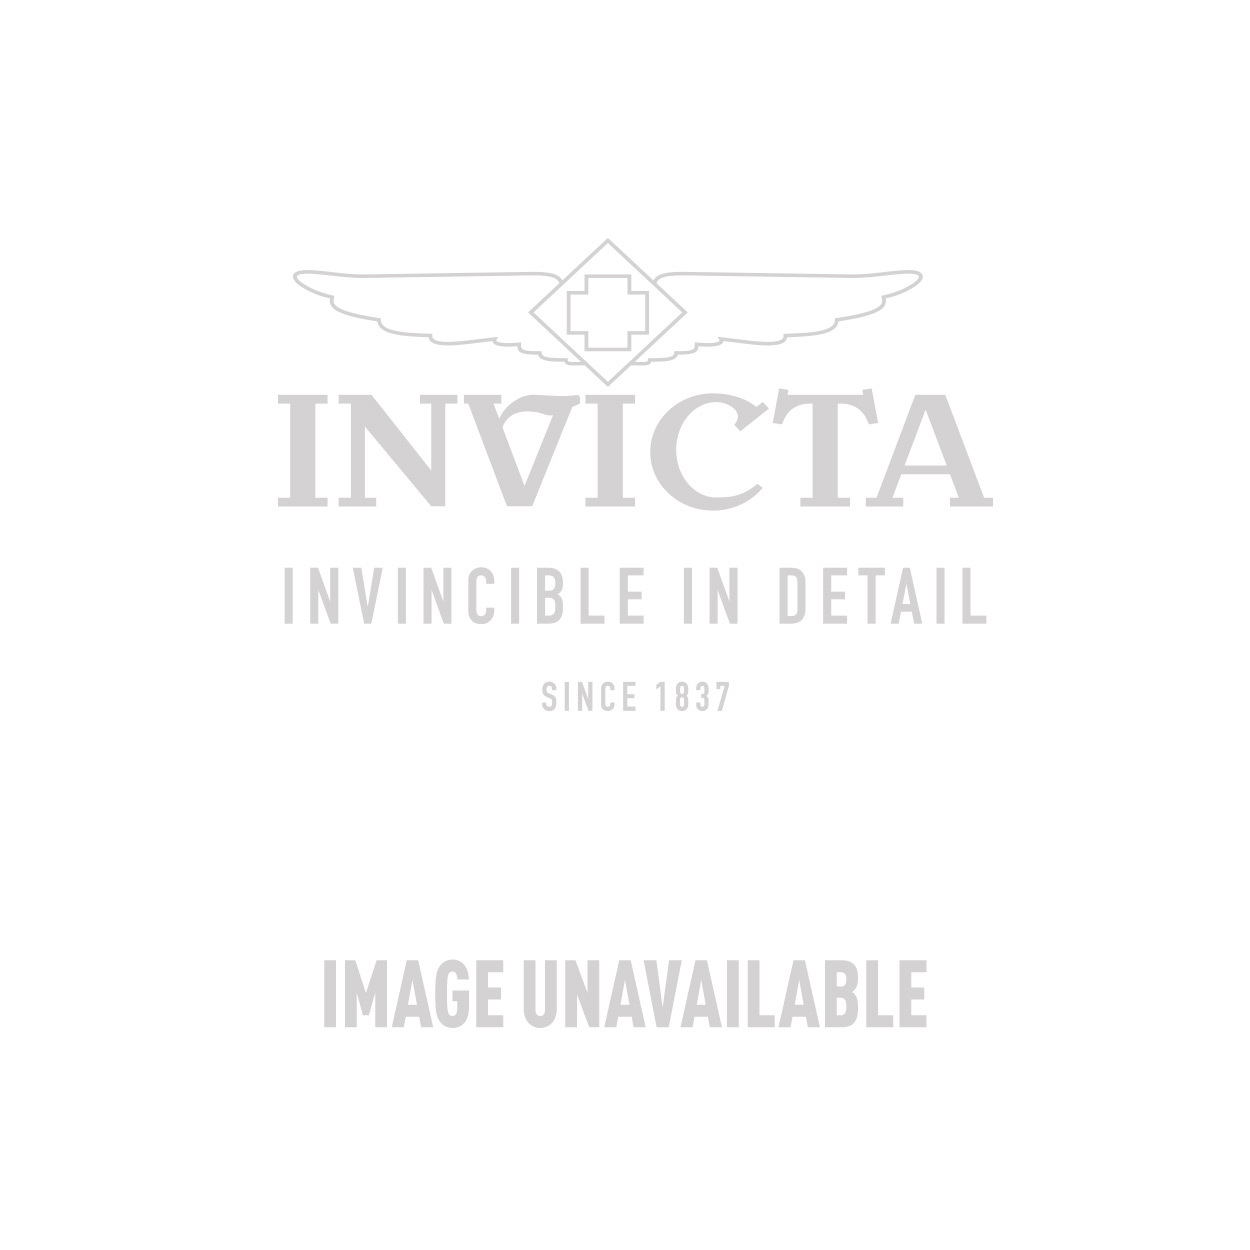 Invicta Sea Hunter  Quartz Watch - Stainless Steel case with White tone Leather band - Model 12180